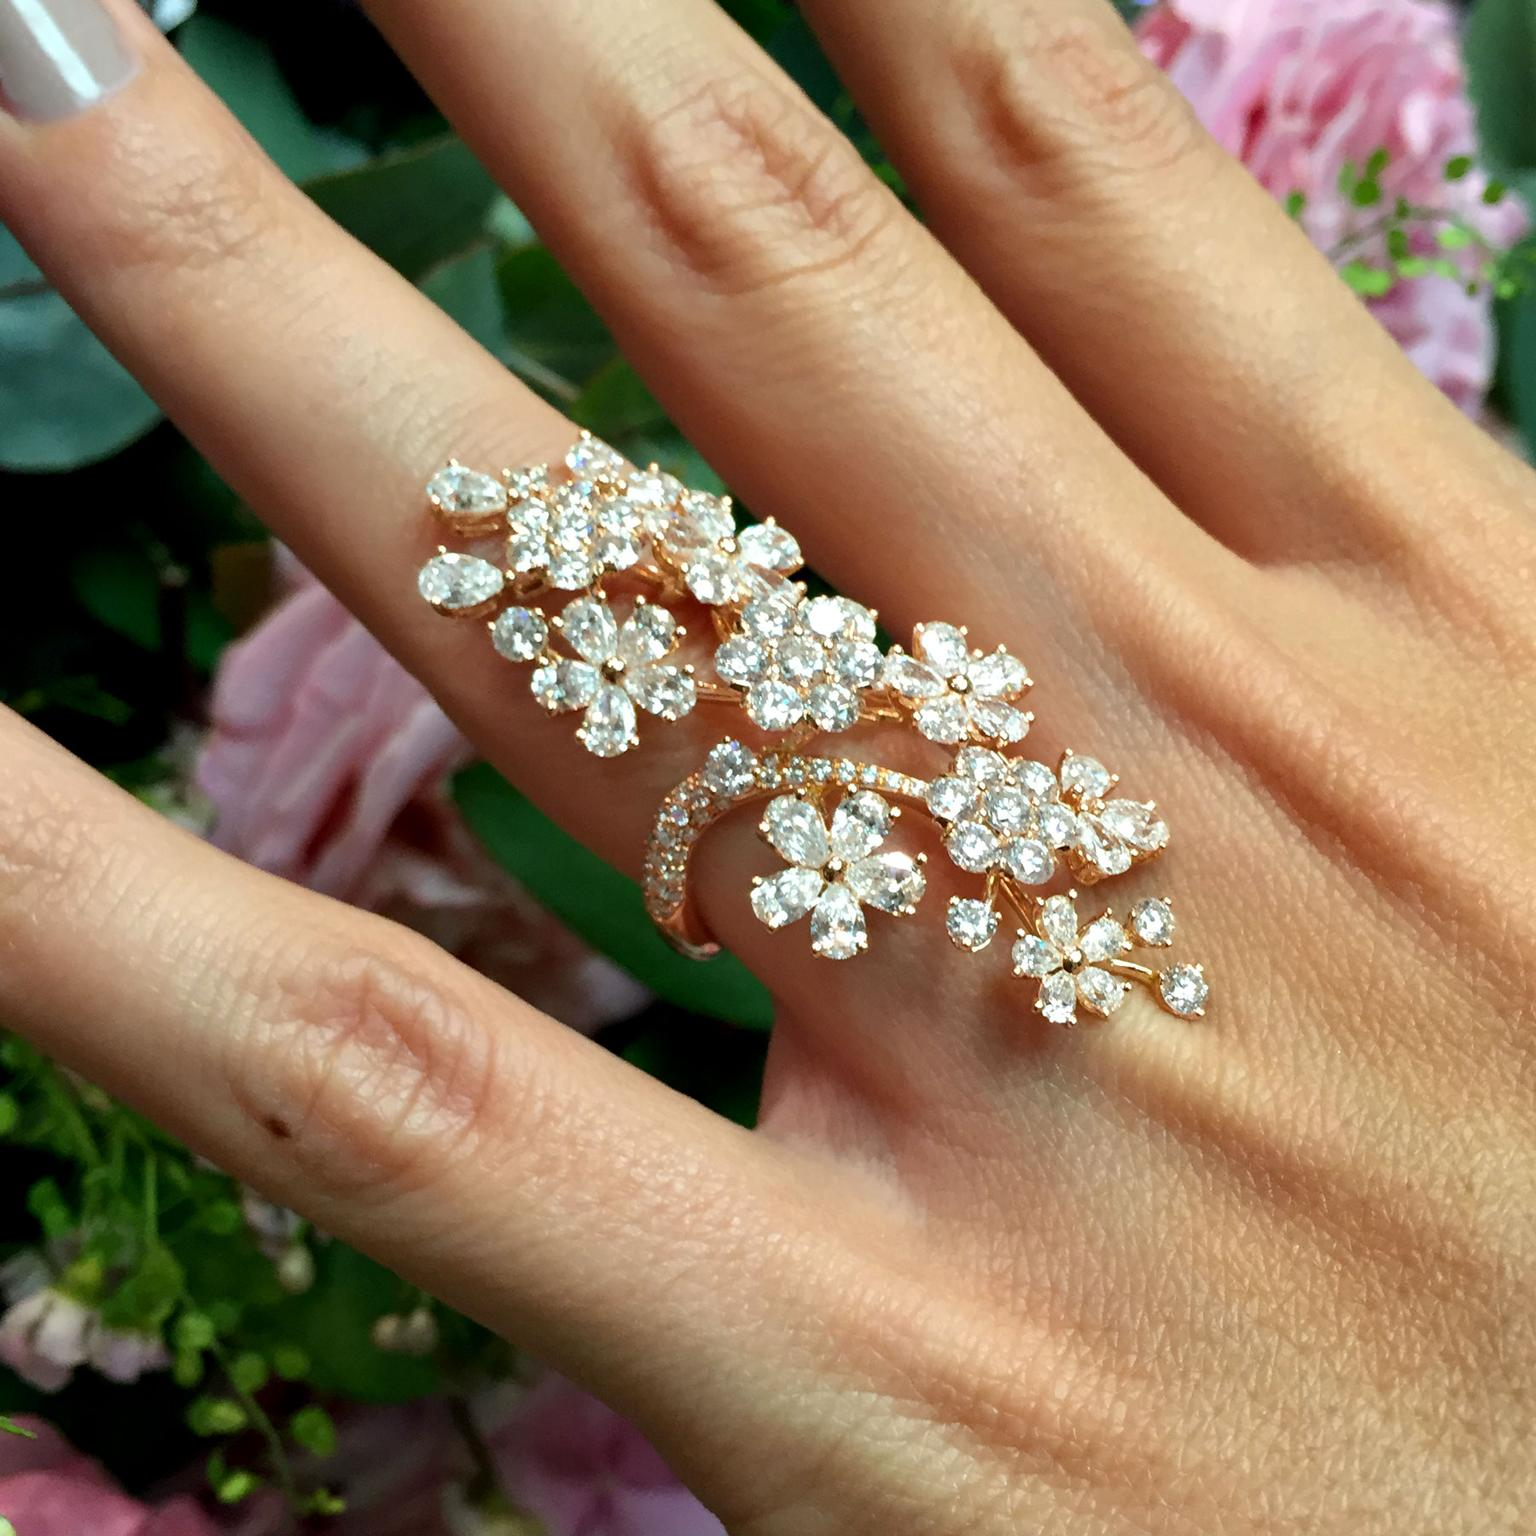 David Morris Cherry Blossom long finger ring on model